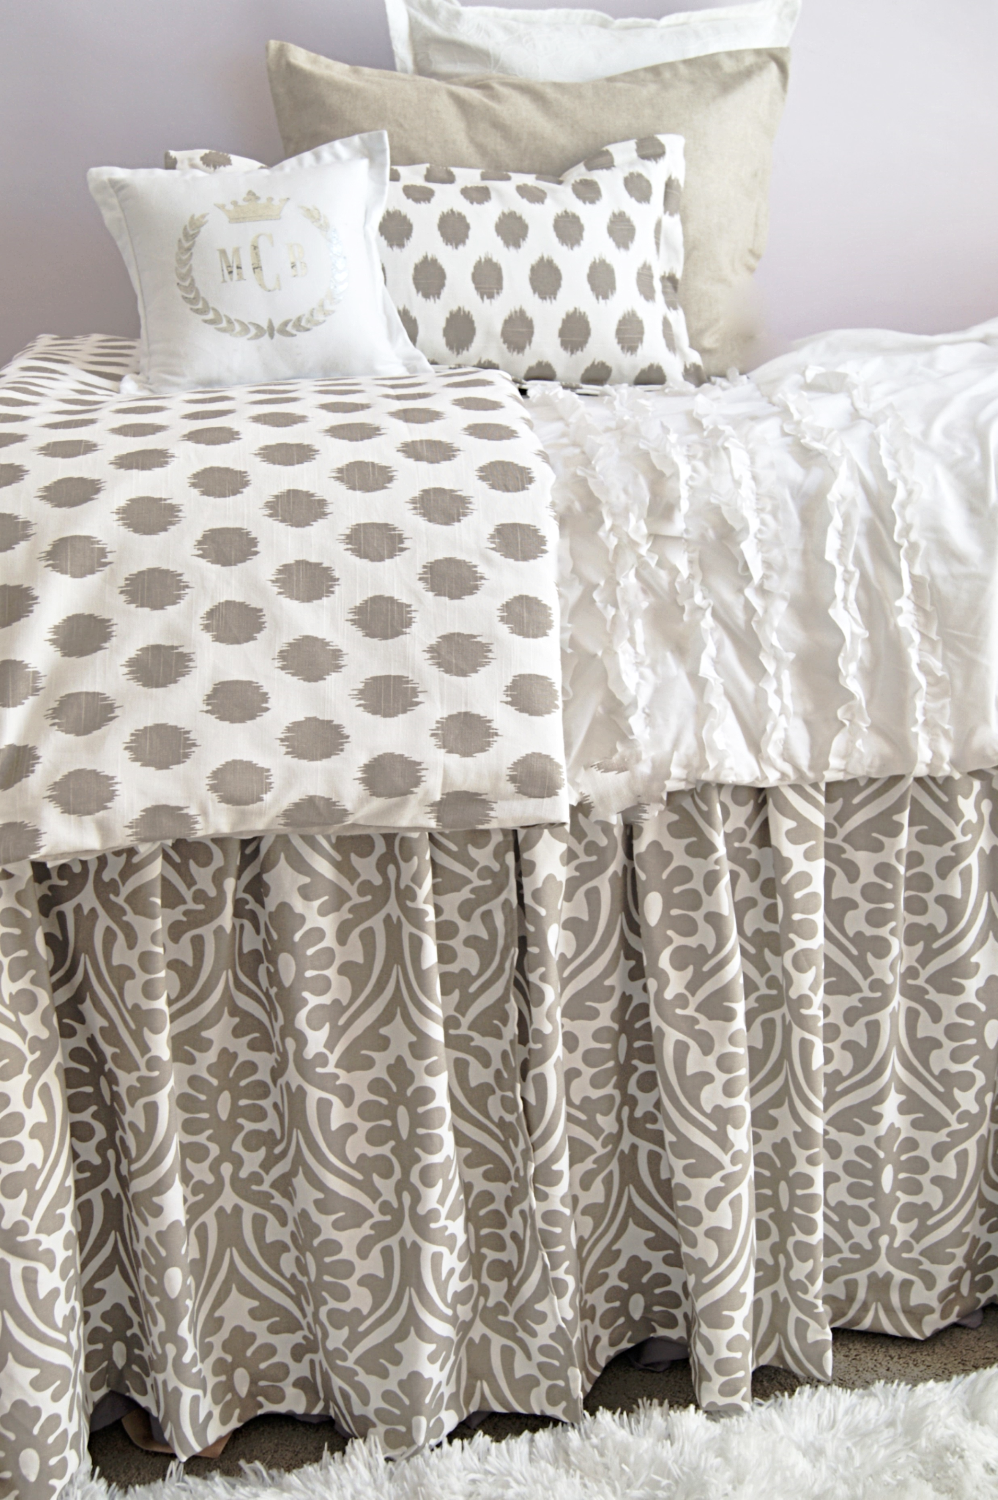 Dorm Room Bed Skirt By Couture Hide Underbed Storage With This 3 Paneled 36 Long